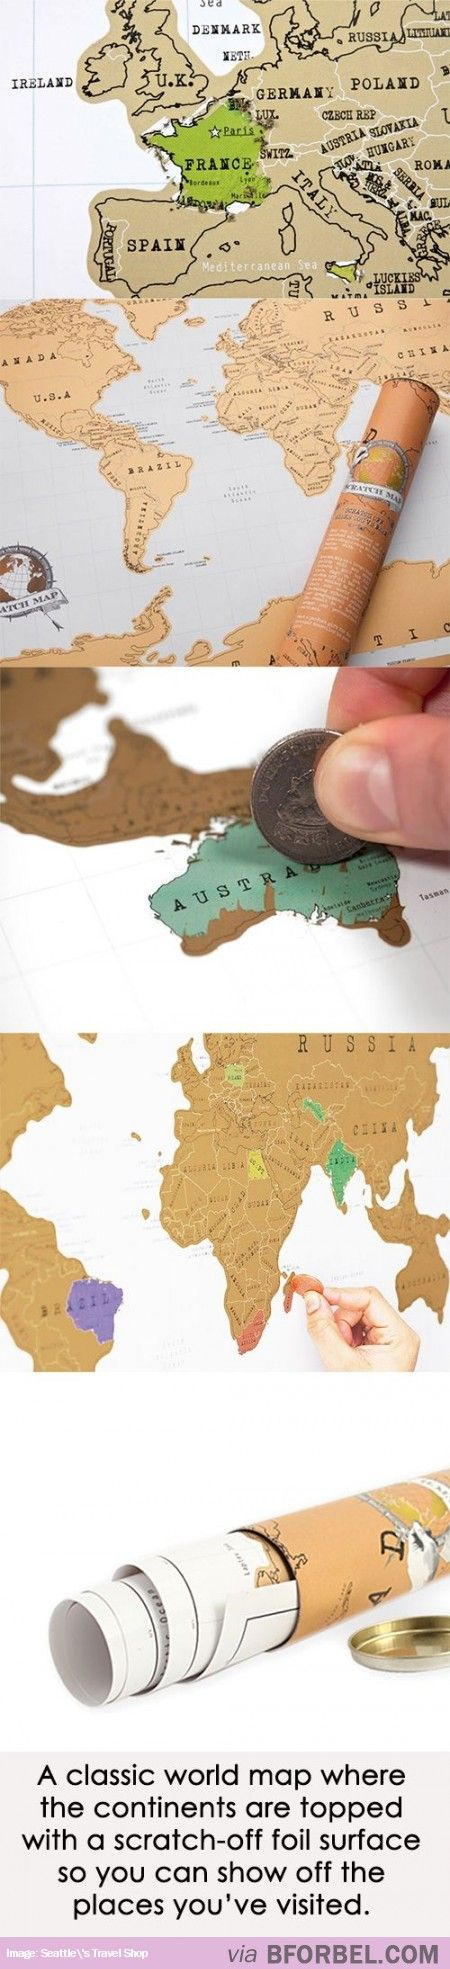 Scratch-Off Map of The World